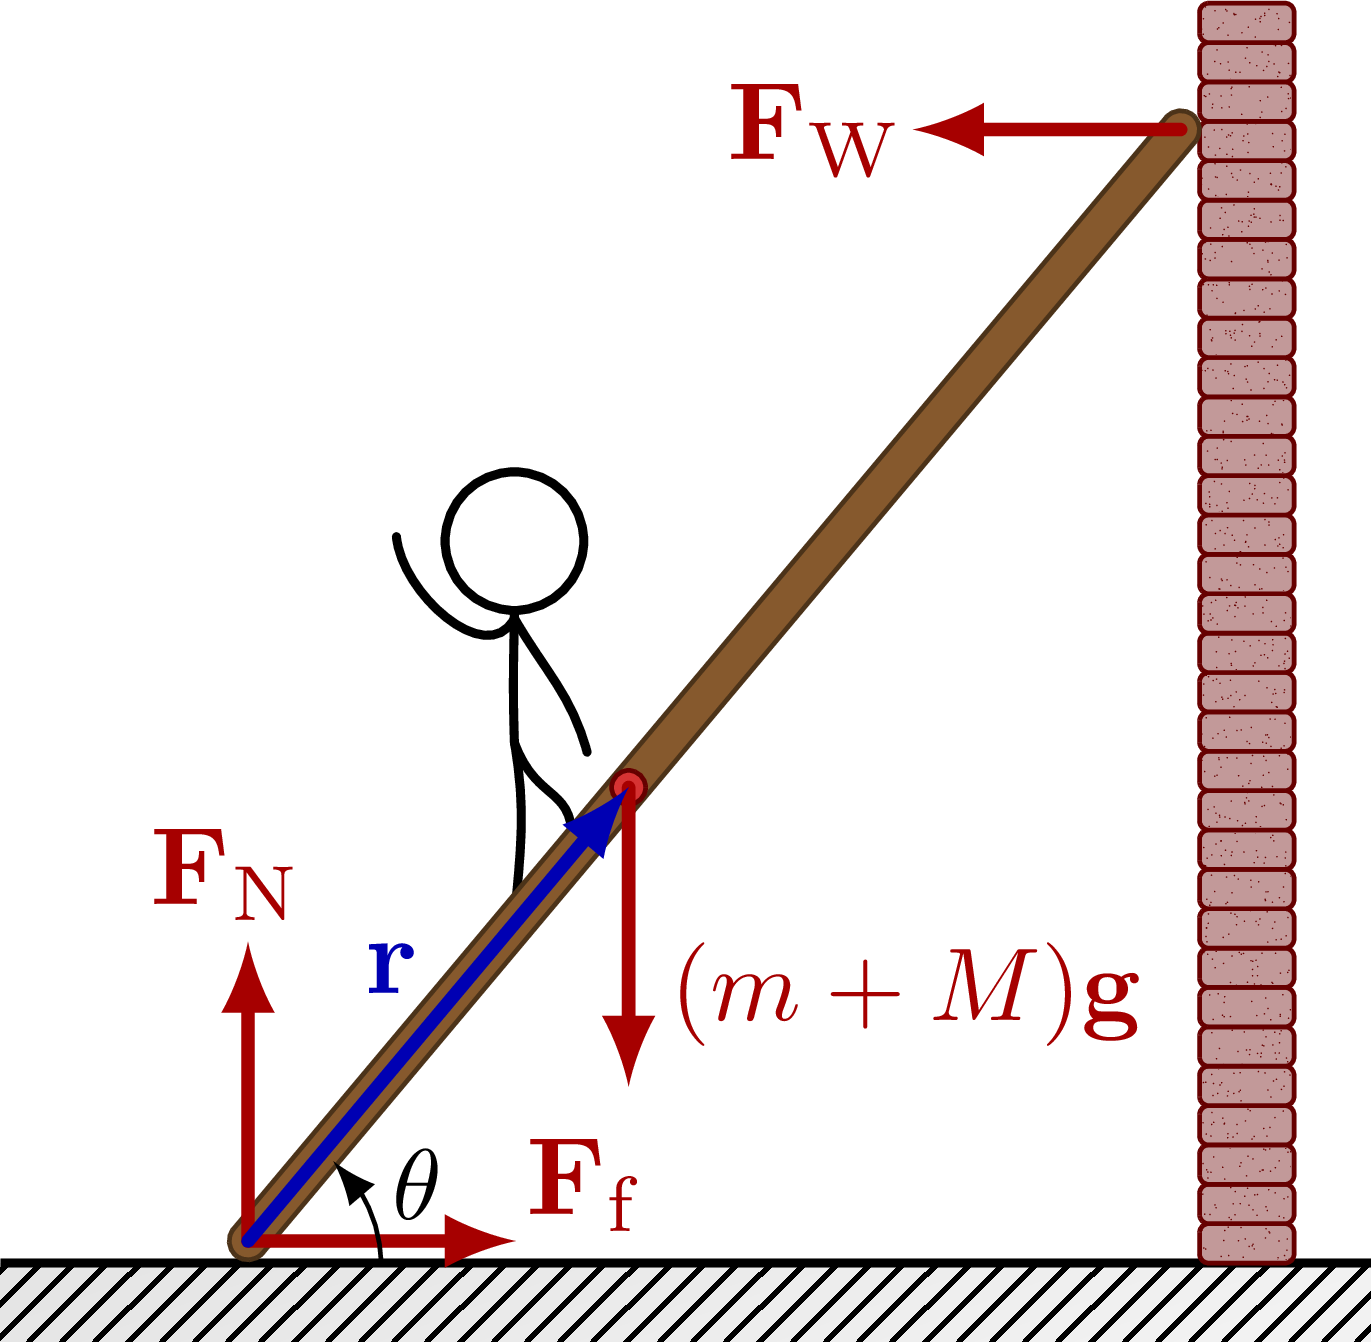 dynamics_stability_ladder-003.png